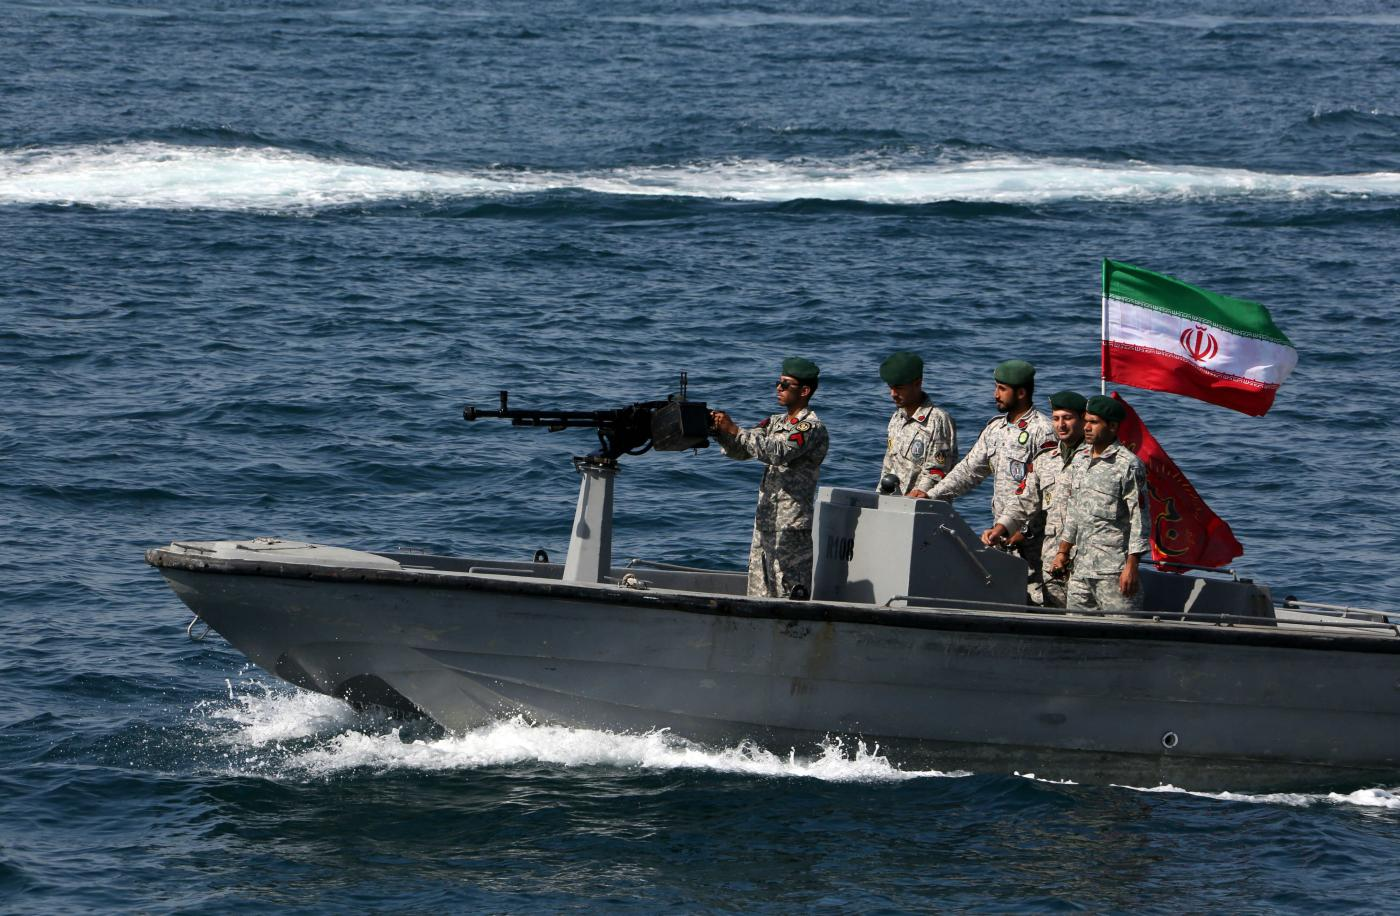 Iran detains UAE ship and its crew